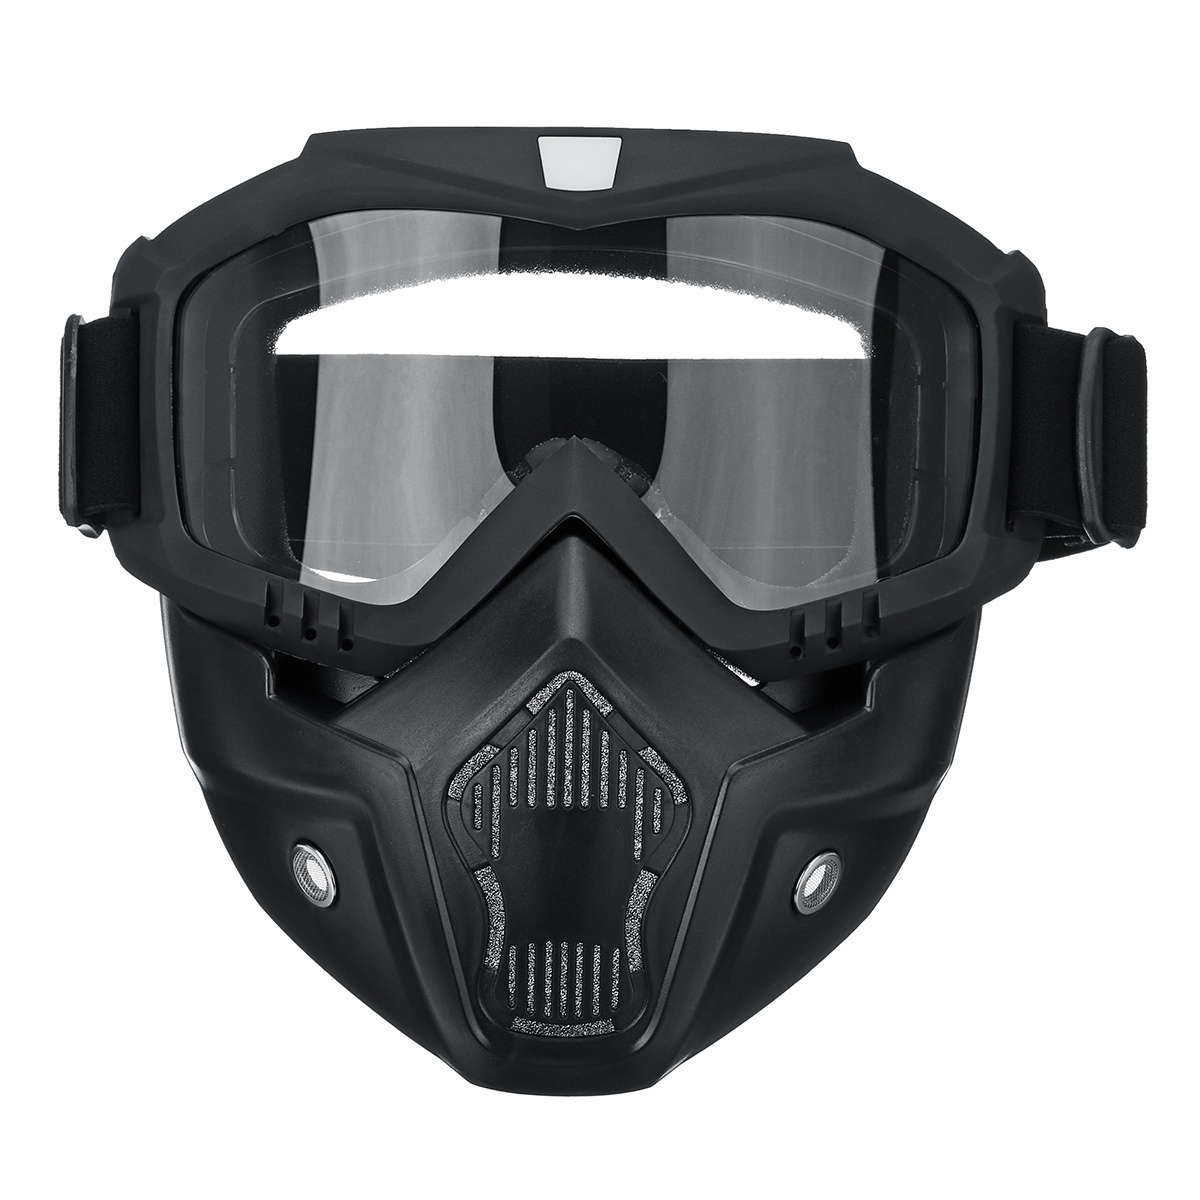 New Full Face Protective Mask Anti Splash Shield Goggles Workplace Protection Supplies Outdoor Cycling CS Game Tactical Mask With Goggle